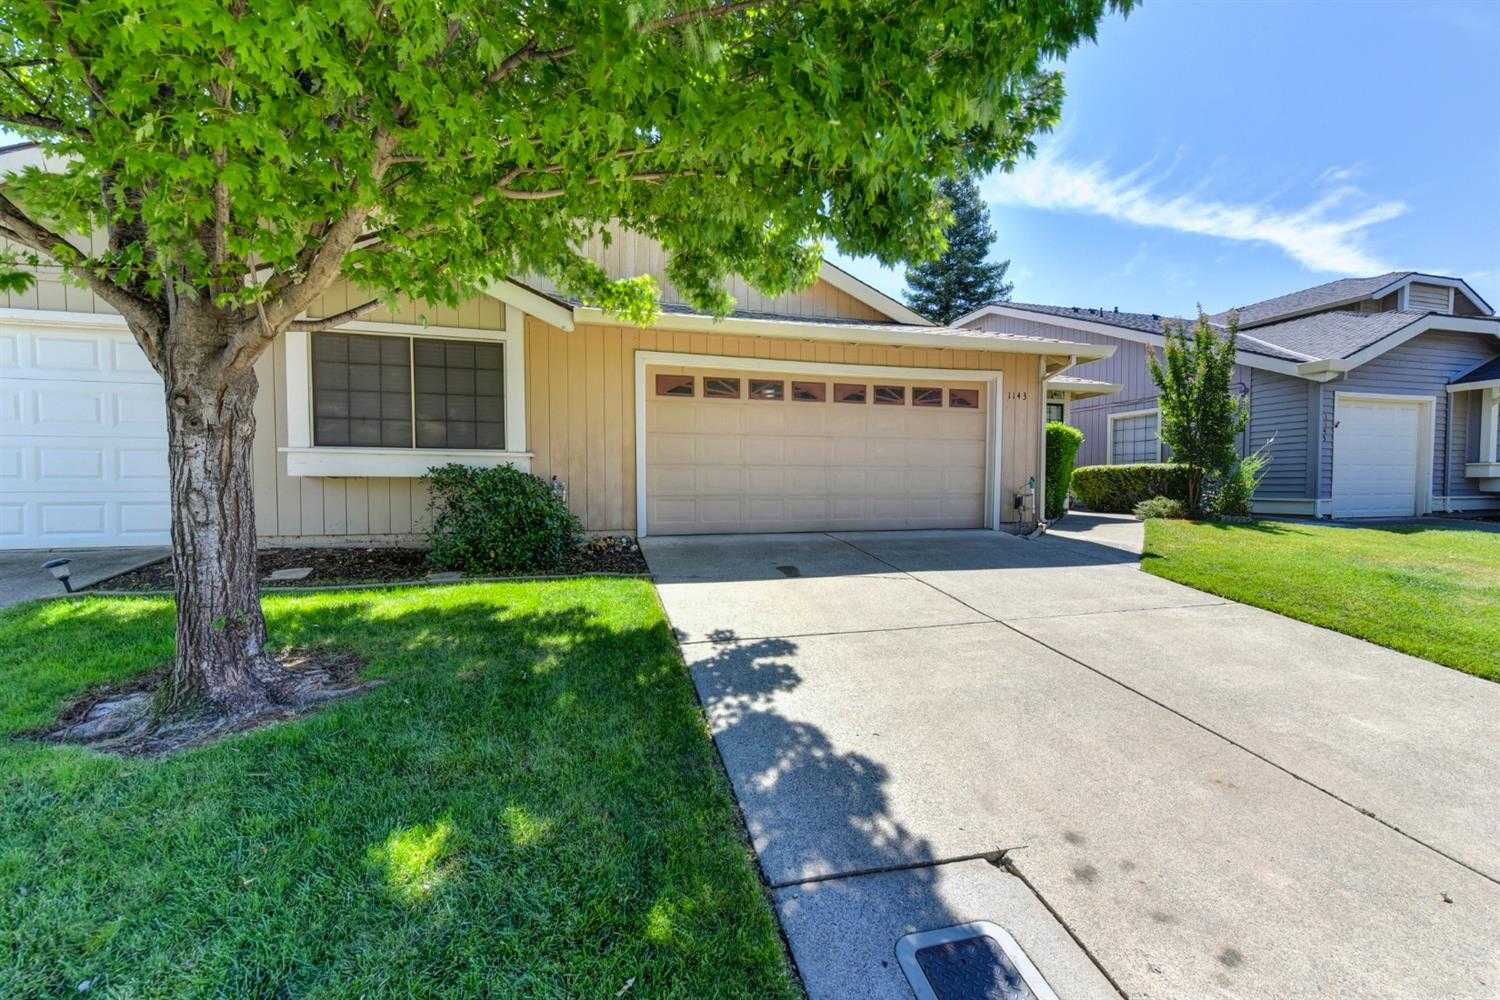 1143 Meadow Gate Dr Roseville, CA 95661